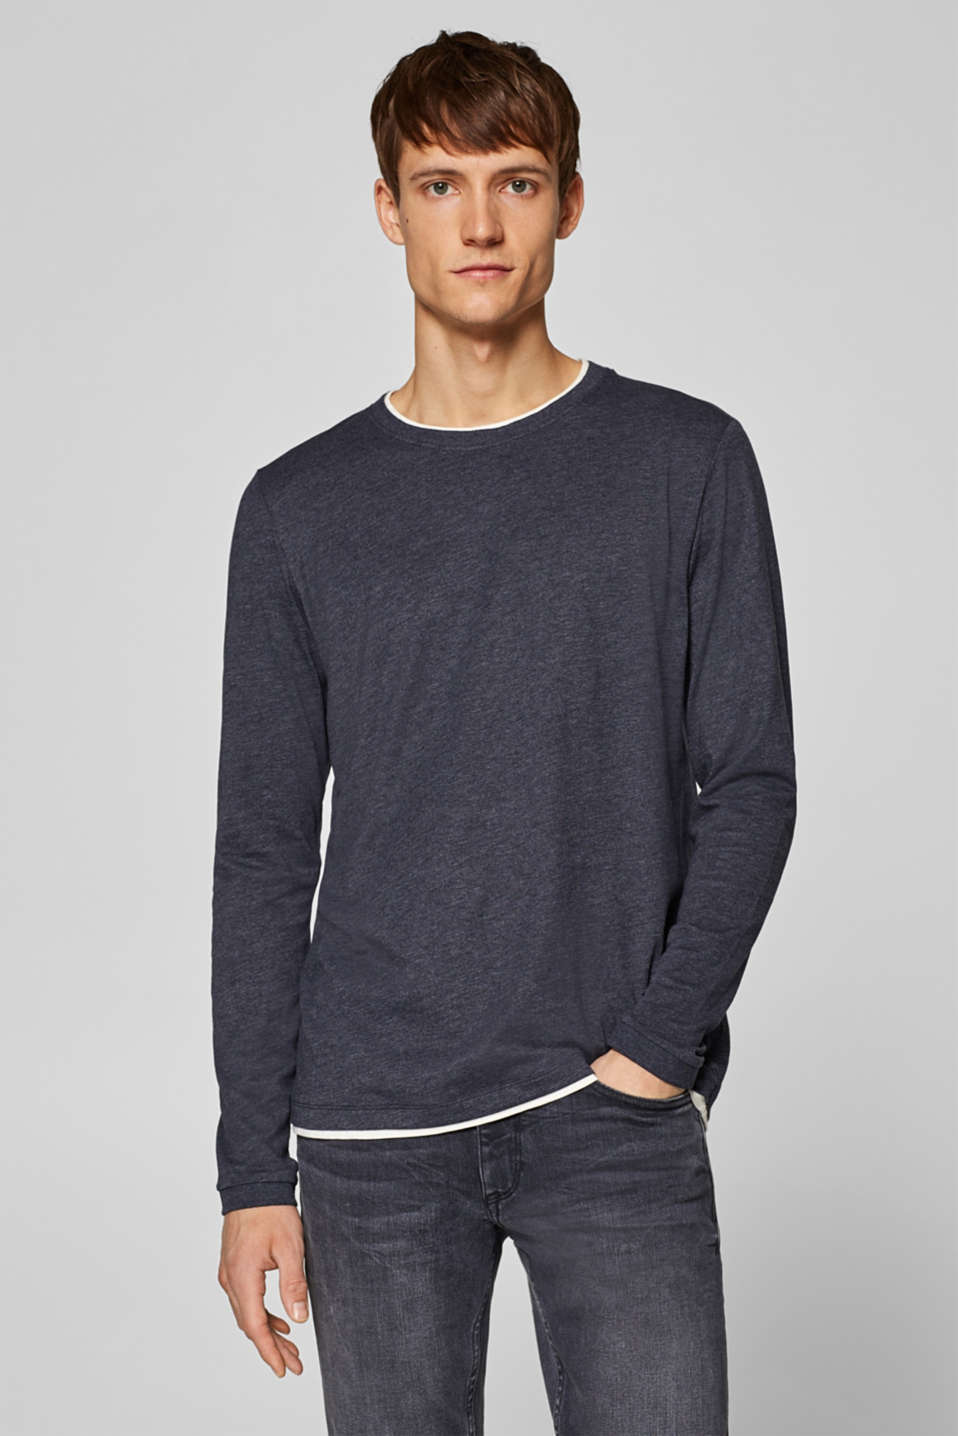 Esprit - Layered long sleeve top in melange jersey